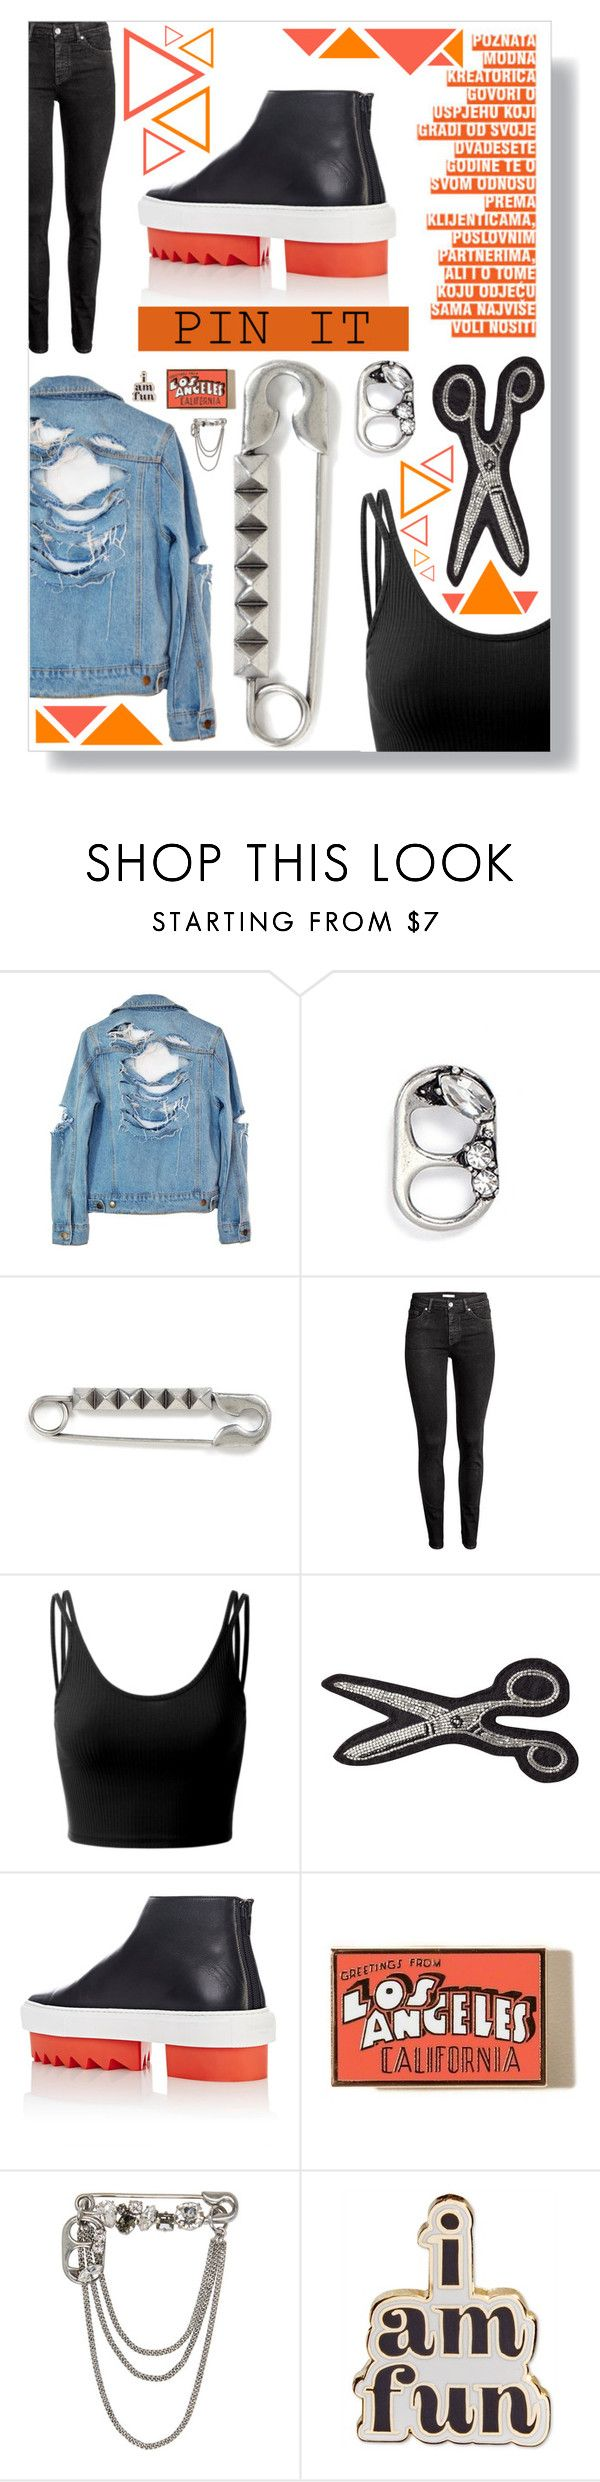 """""""Untitled #1300"""" by campbell765 ❤ liked on Polyvore featuring High Heels Suicide, Marc Jacobs, H&M, Doublju, Olympia Le-Tan, Givenchy, Hollister Co. and ban.do"""